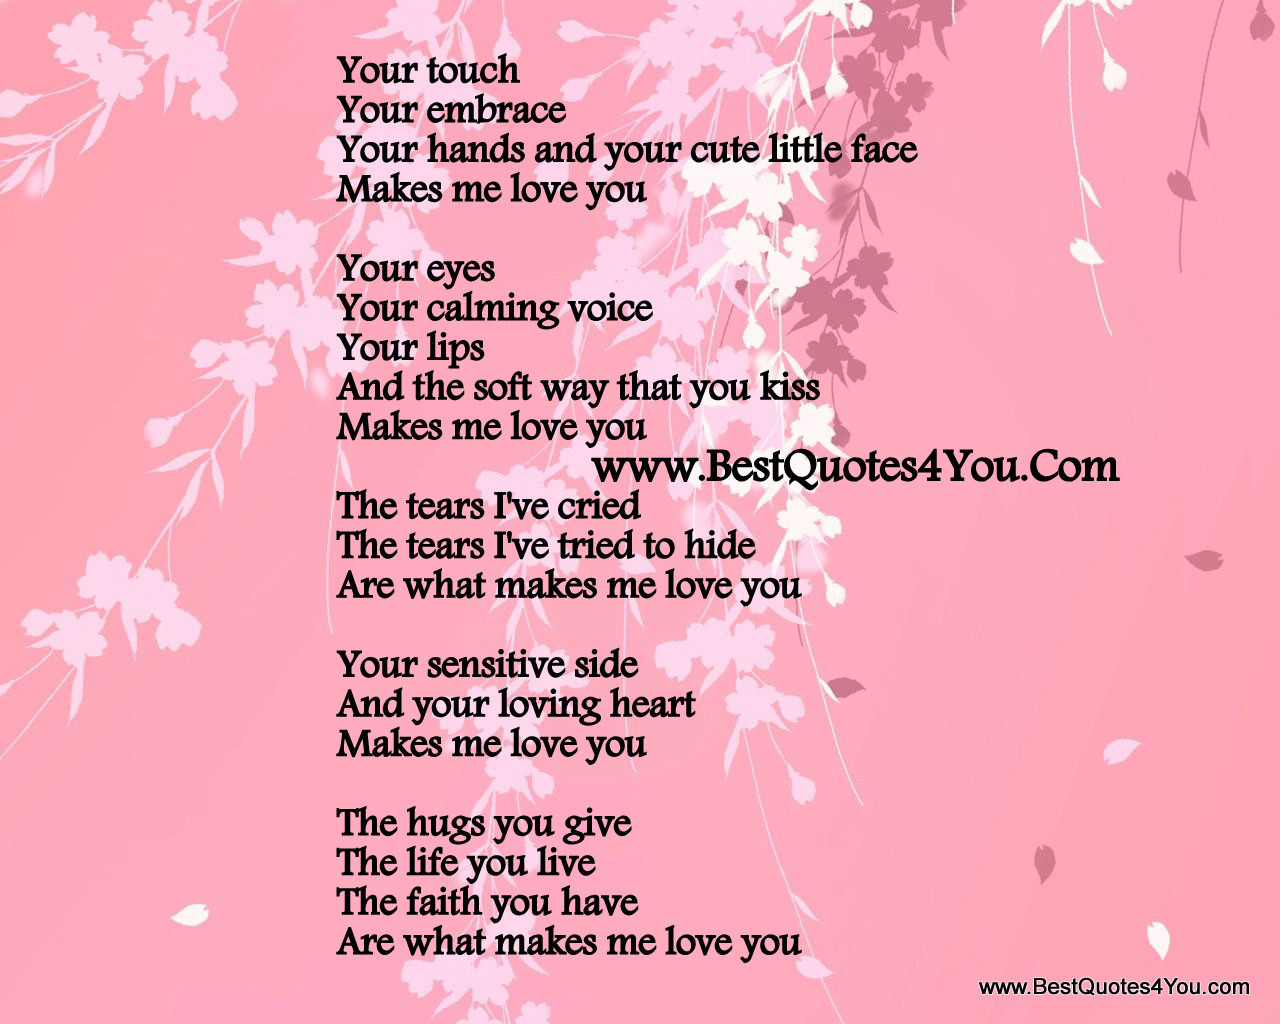 Cute New Relationship Quotes  New Relationship Quotes For Her QuotesGram